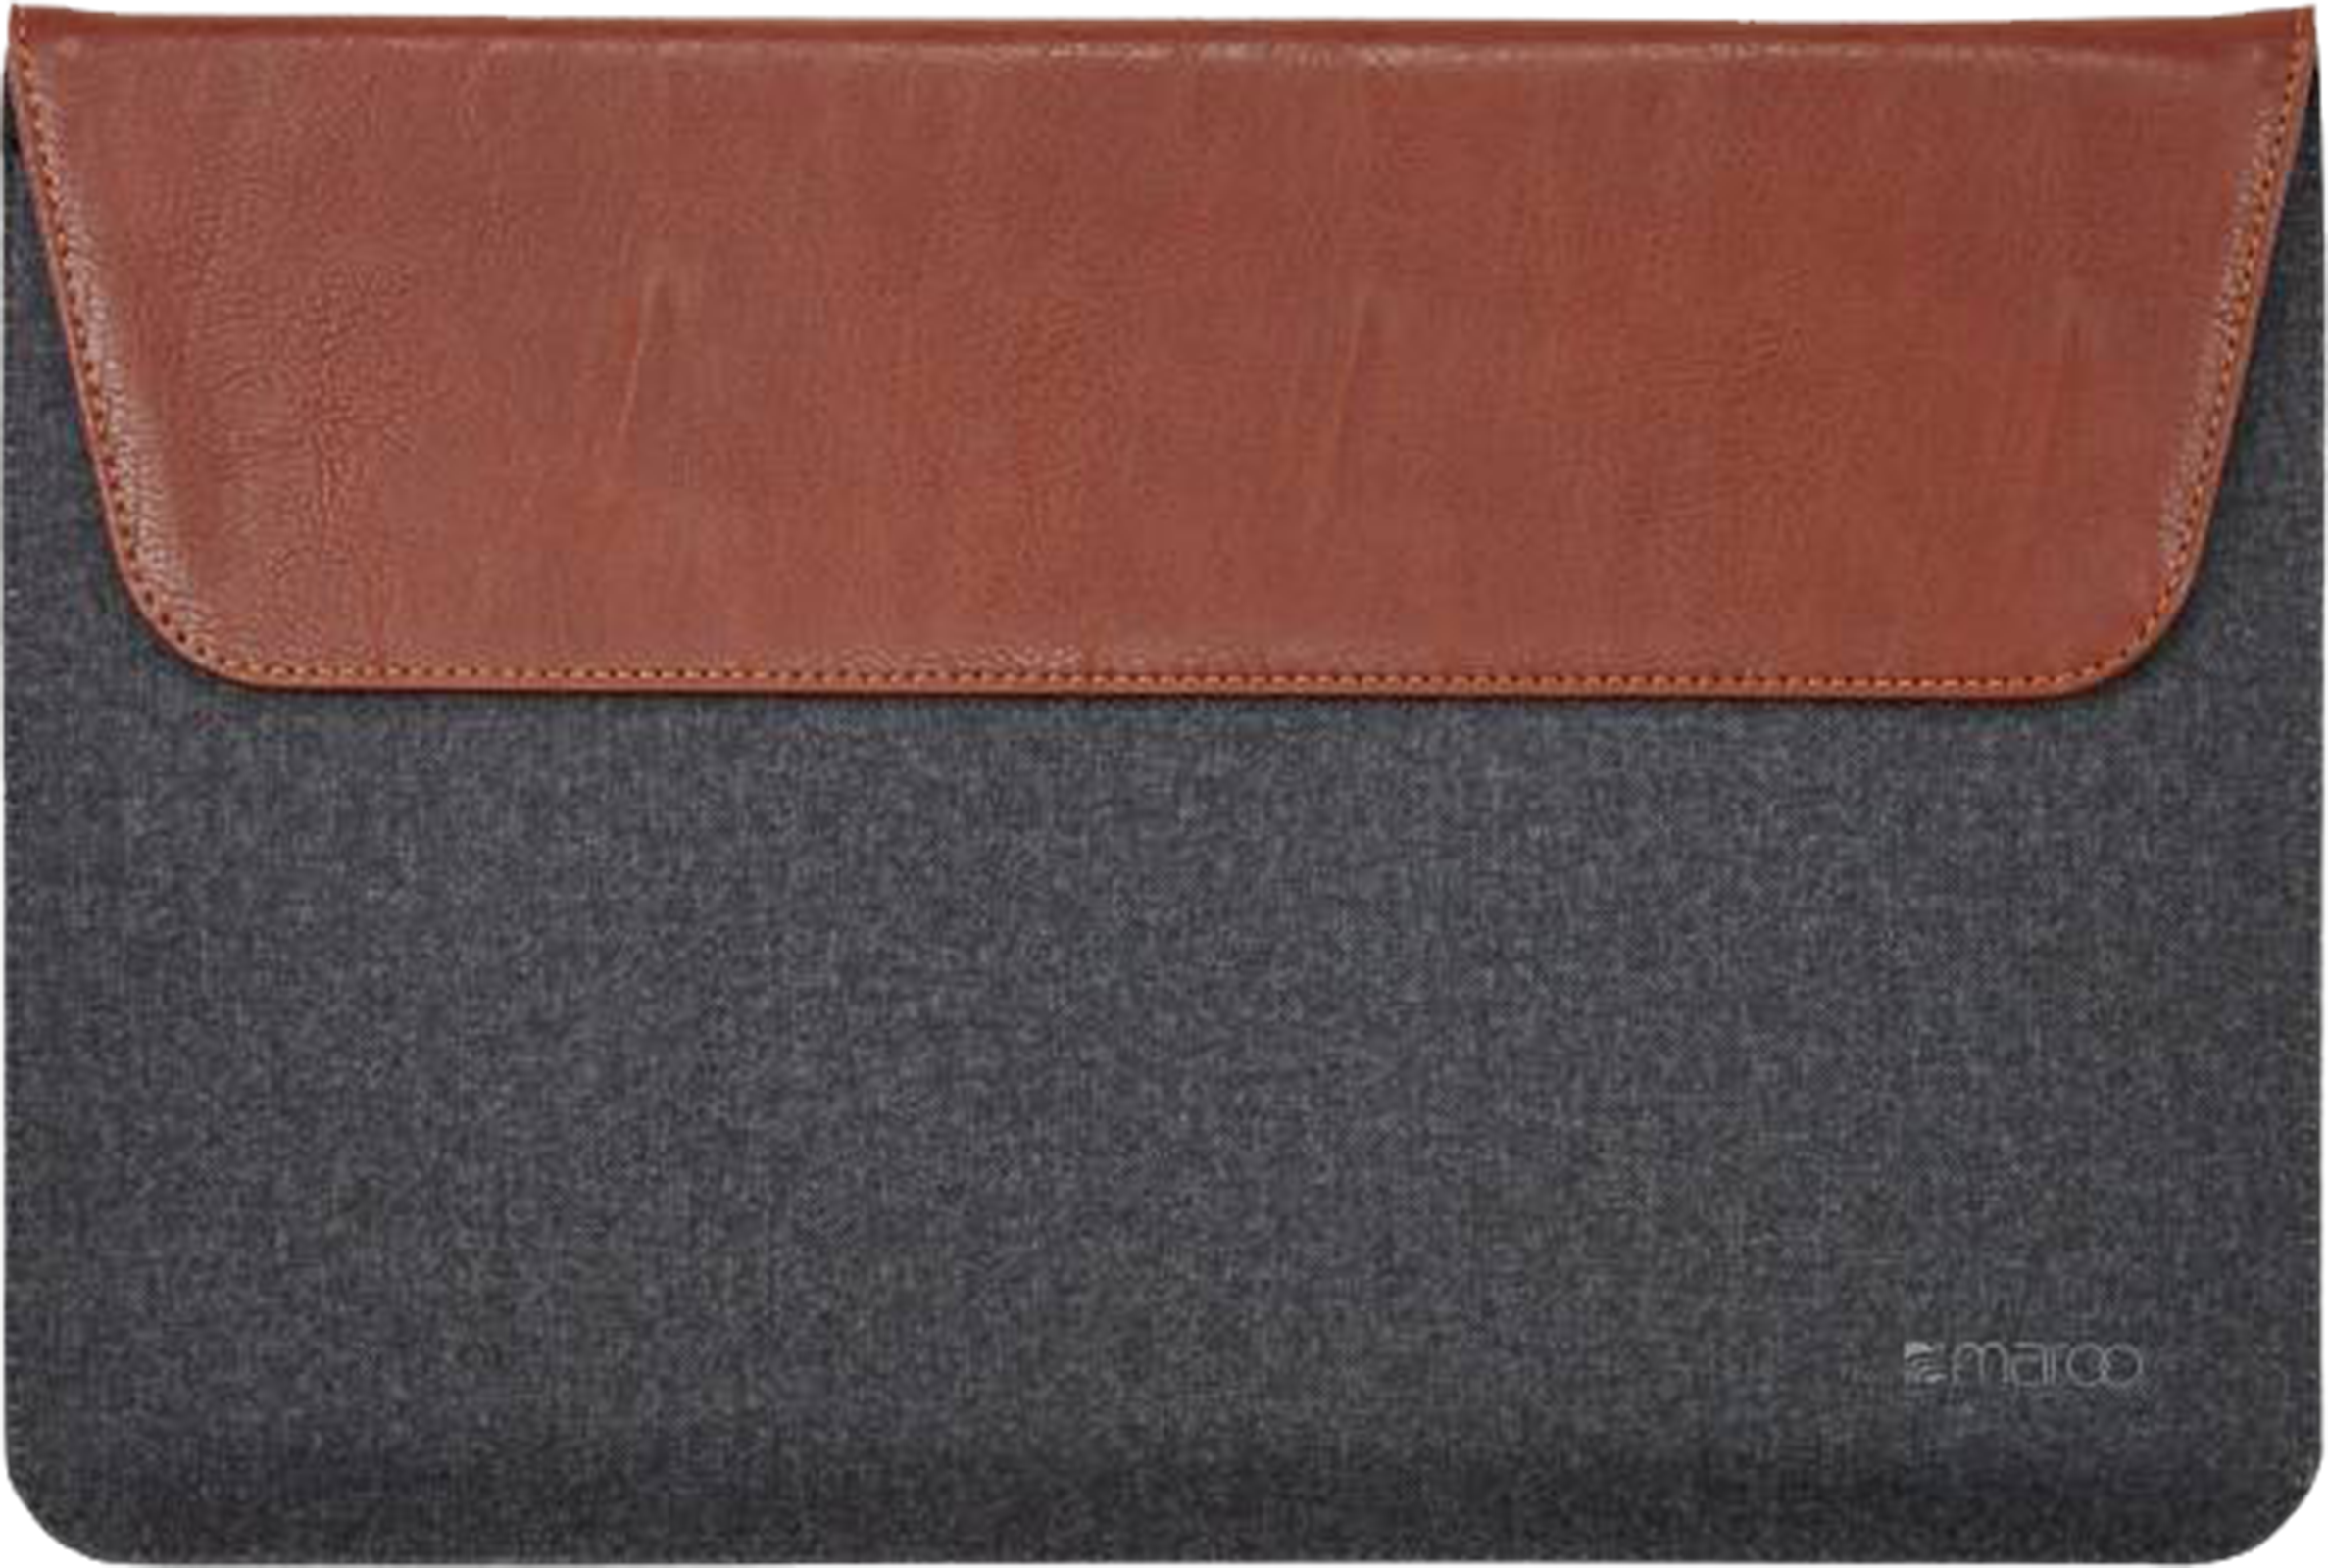 Maroo Synthetic Leather Folio for Surface Pro (Dark Brown)